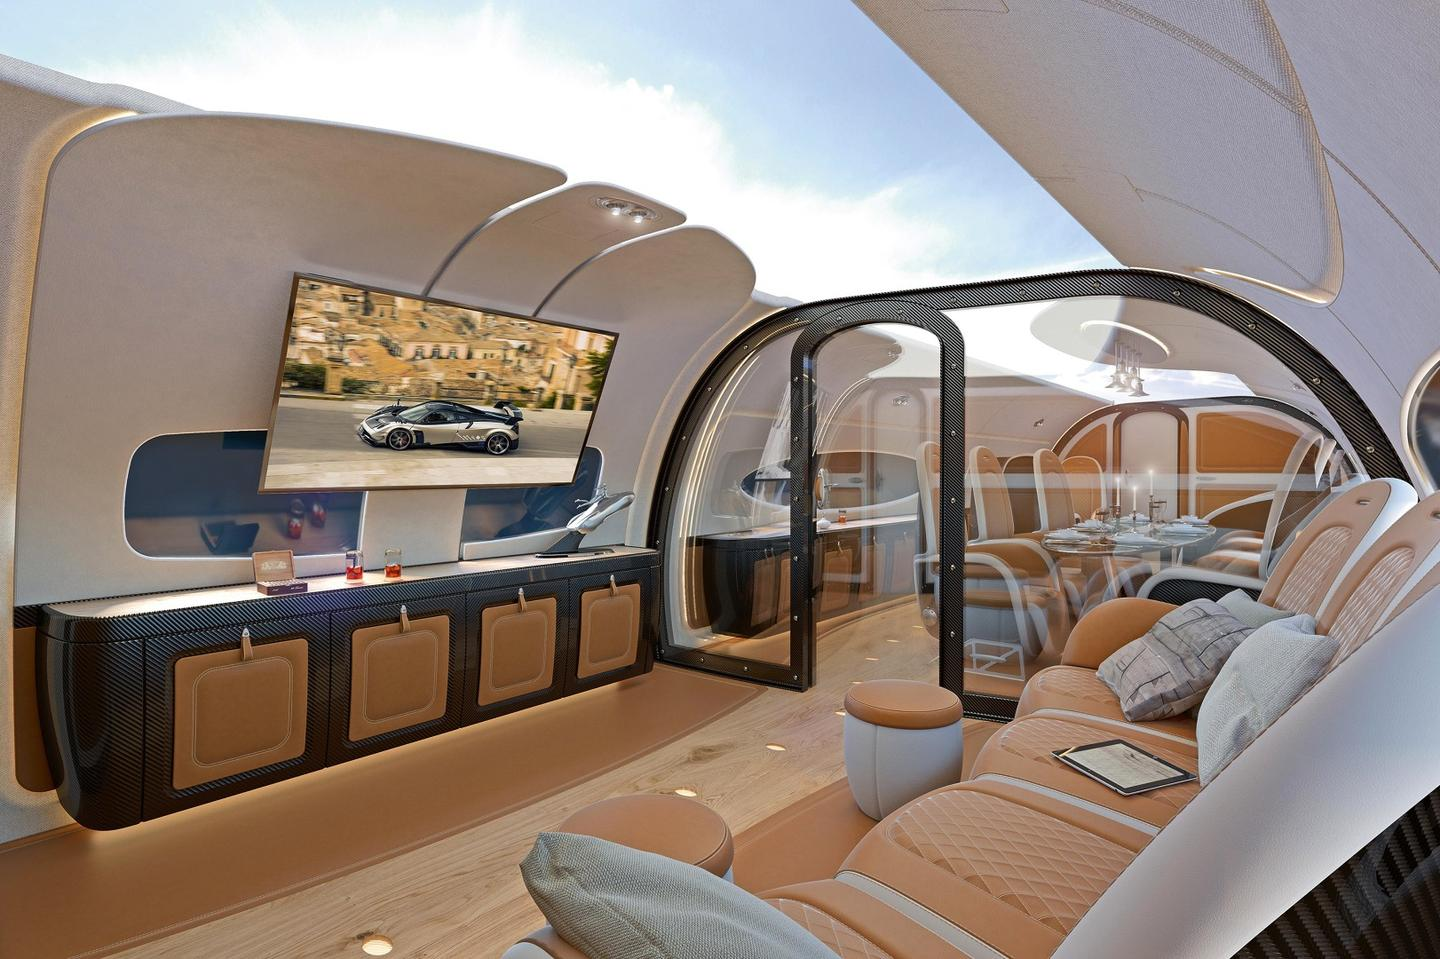 Airbus and Pagani team on the Infinito cabin